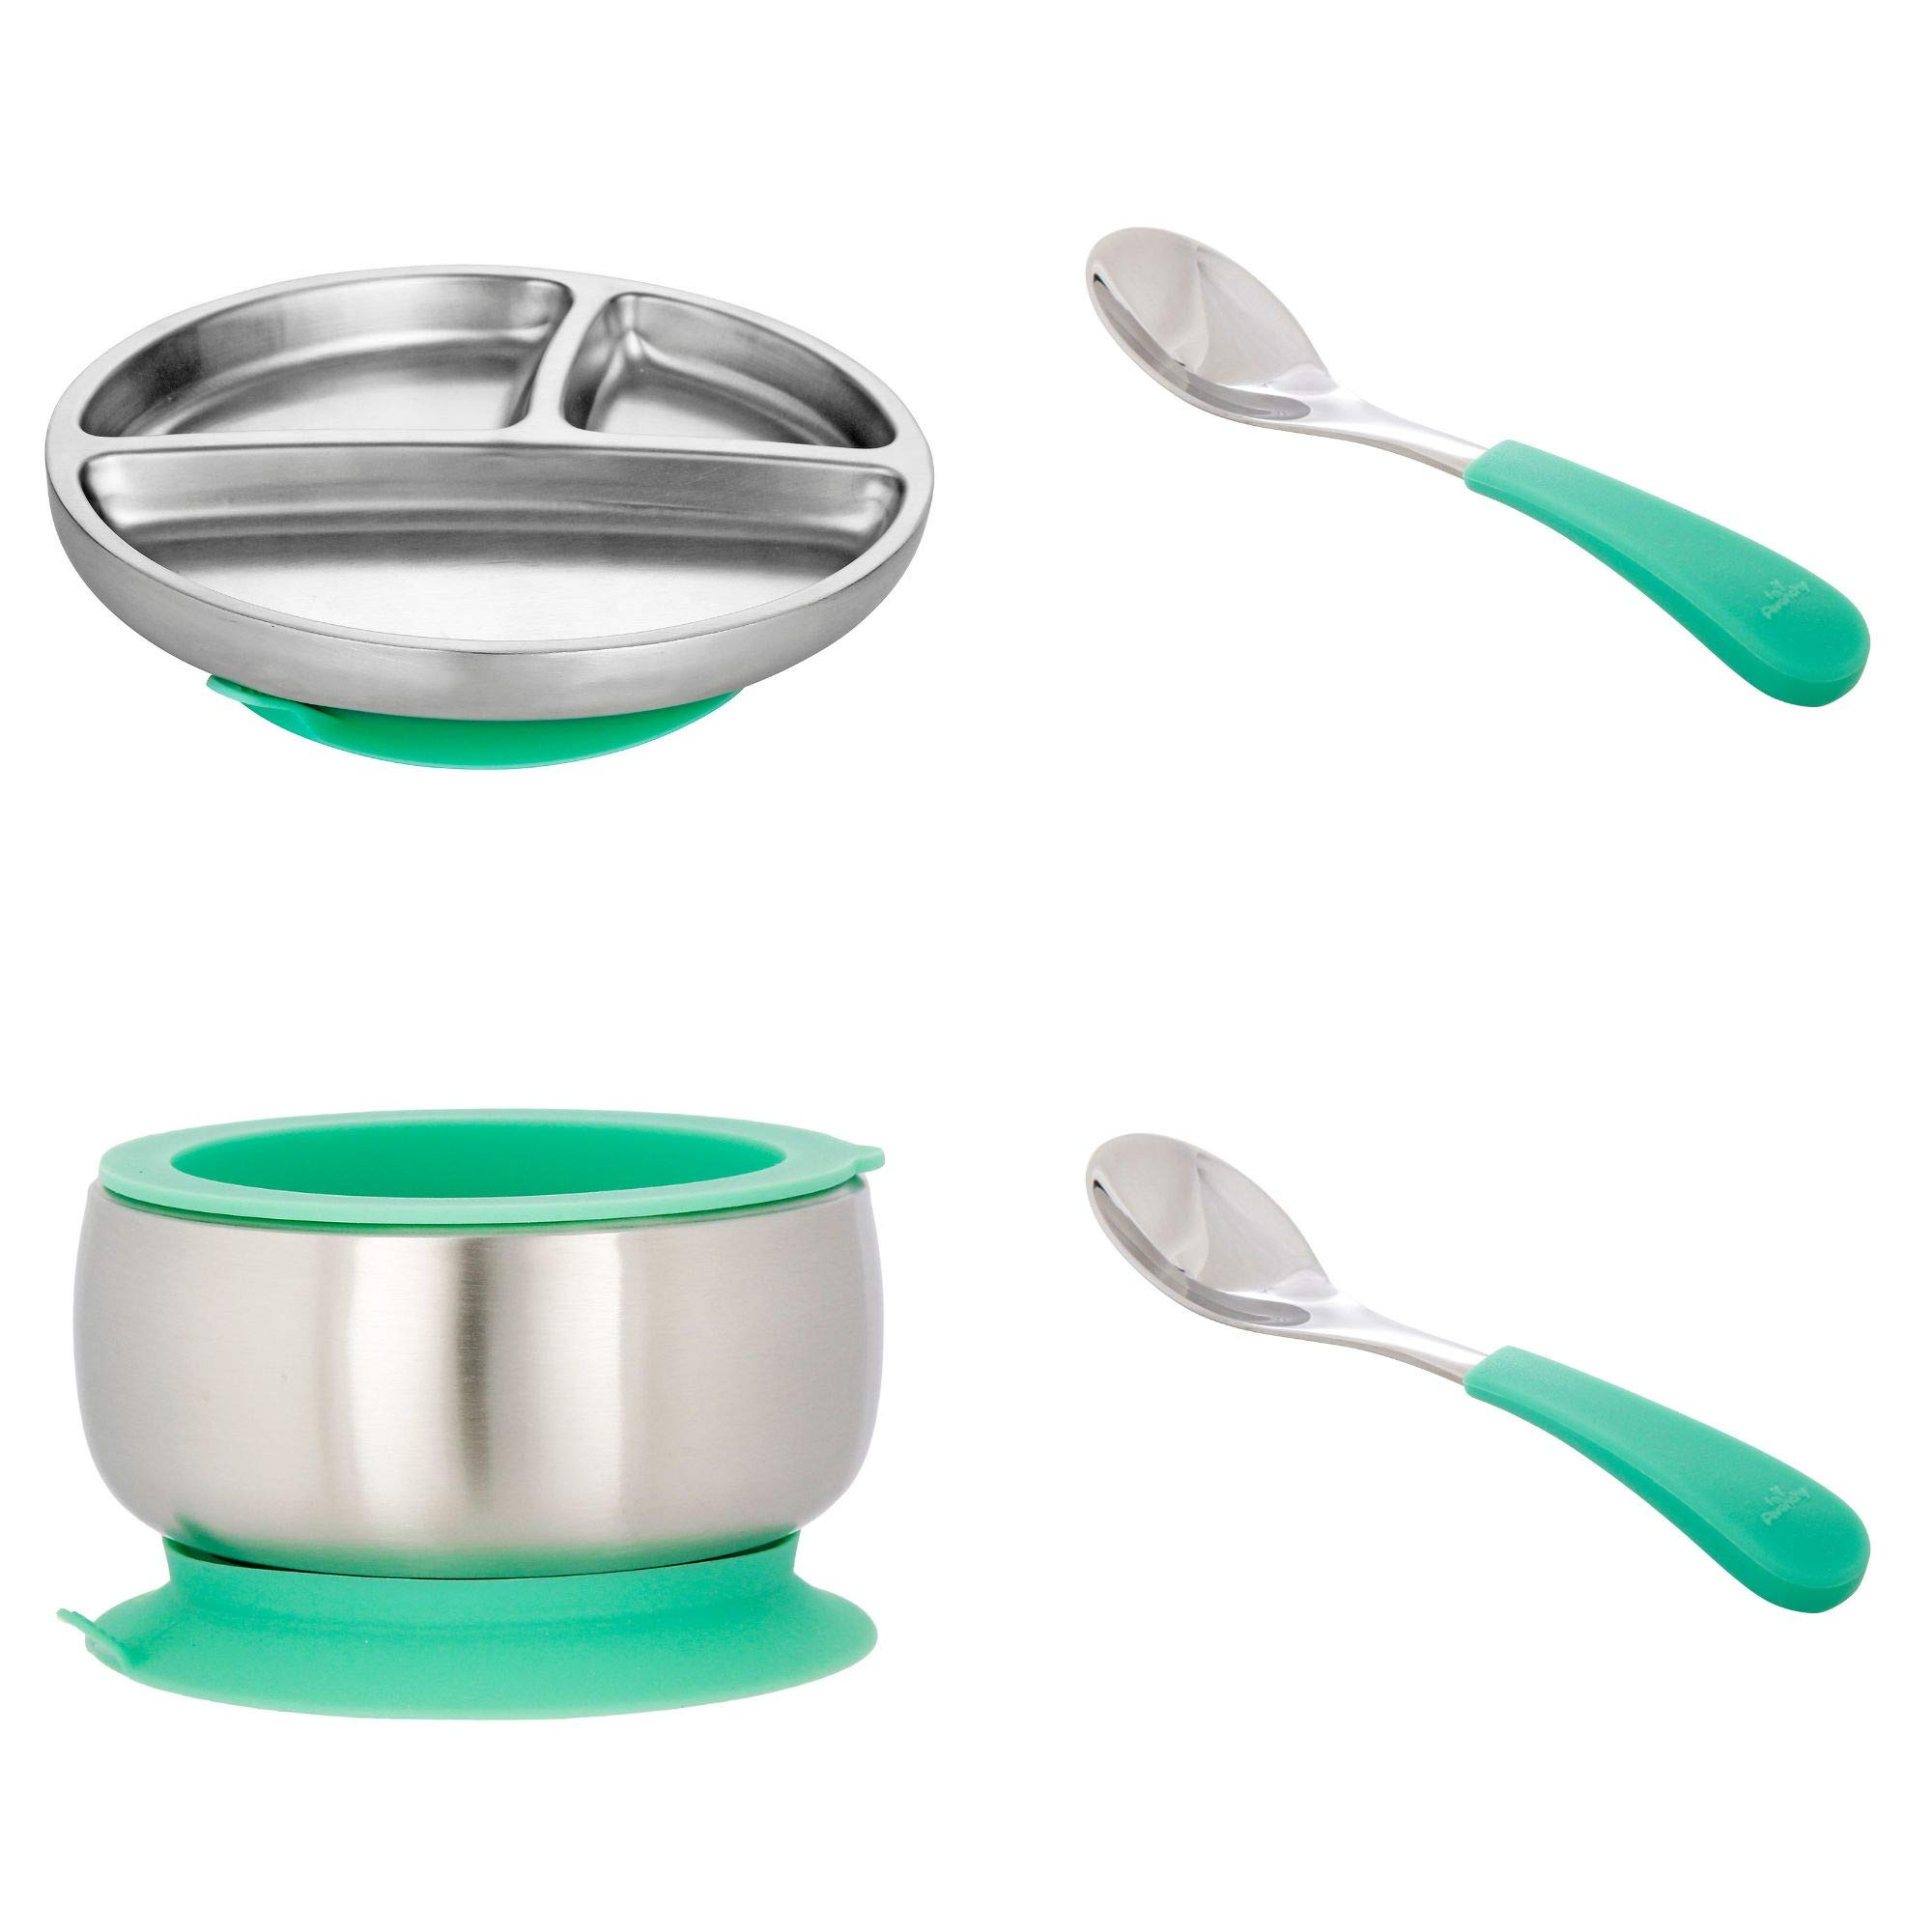 Avanchy Stainless Steel Baby, Toddler Feeding Divided Plate + Bowl + 2 Spoons Giftset. Infant, Kid or Child Gift. 18/8, BPA Free, BPS Free, Lead Free and Phthalate Free. Green